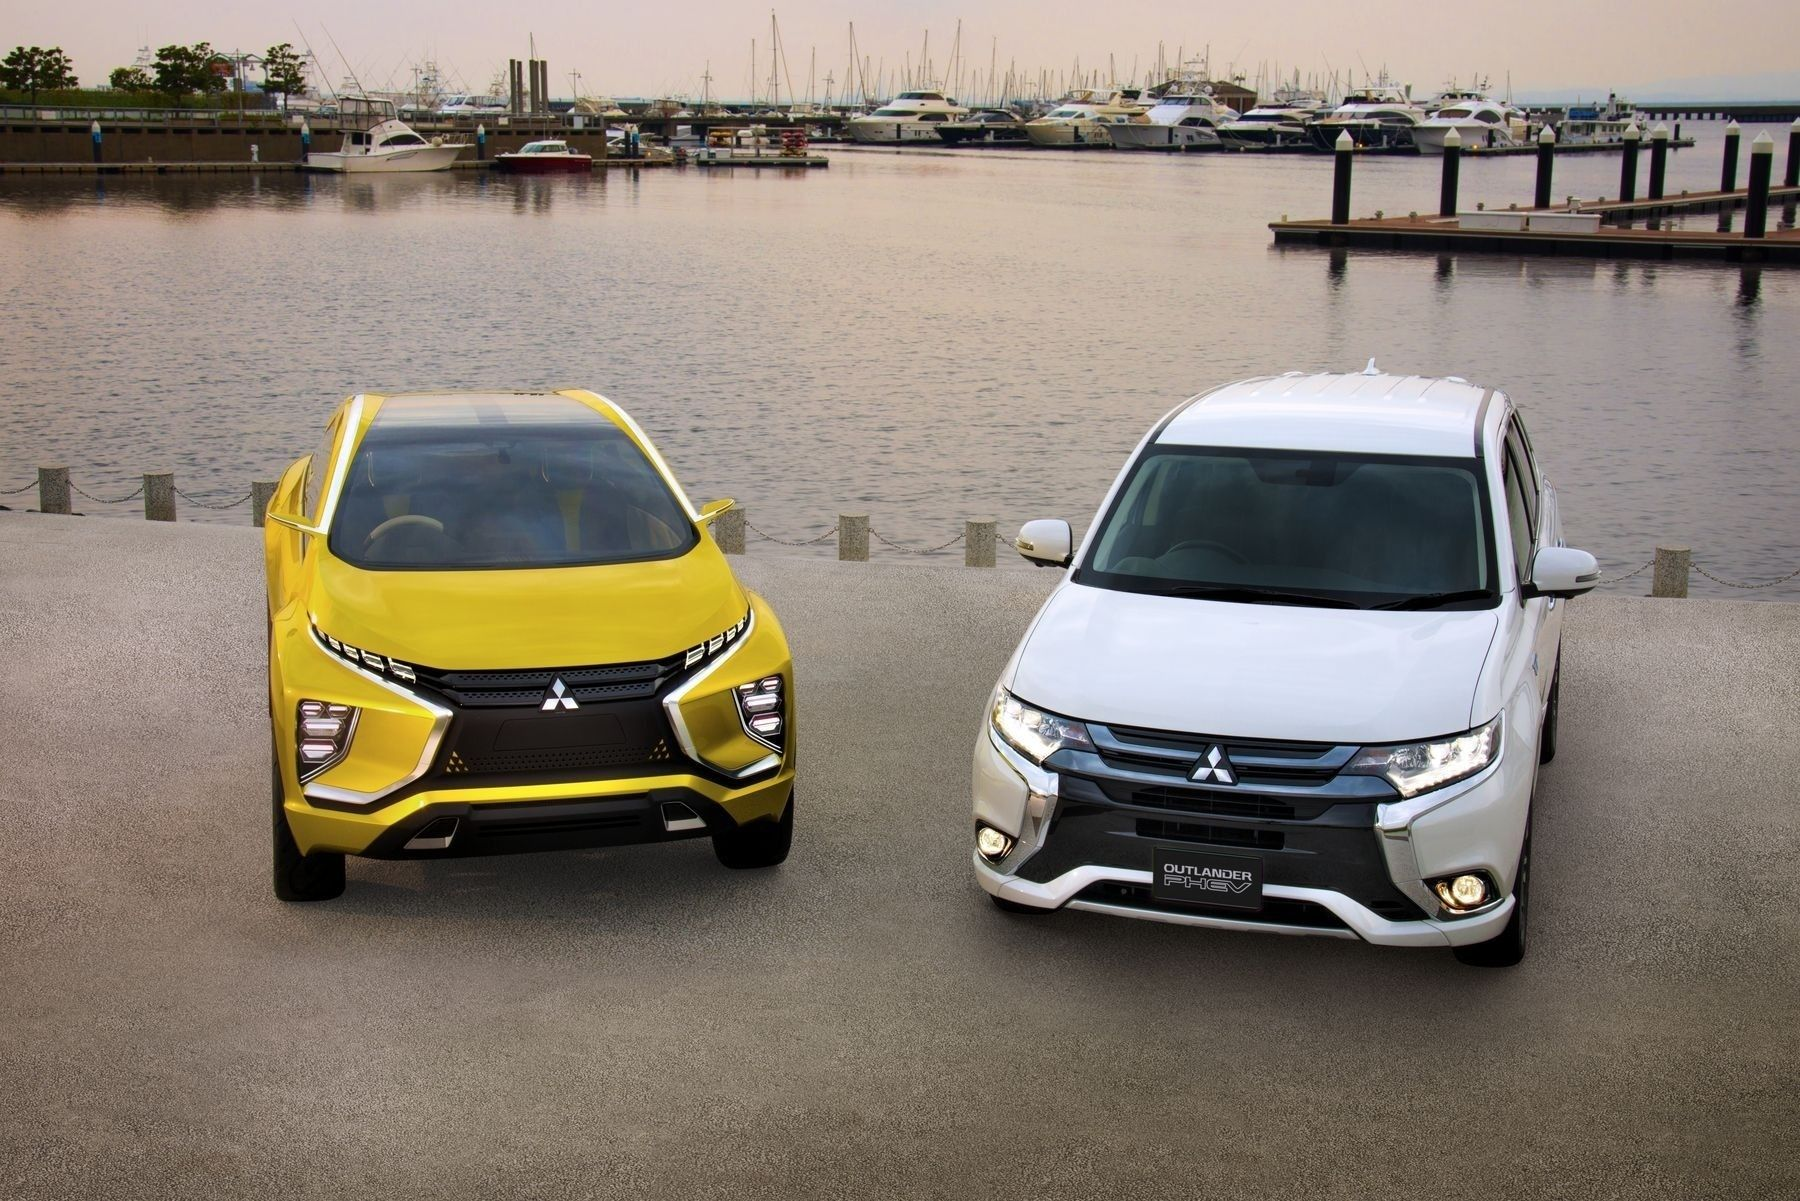 2019 Mitsubishi Outlander Interior, Exterior and Review